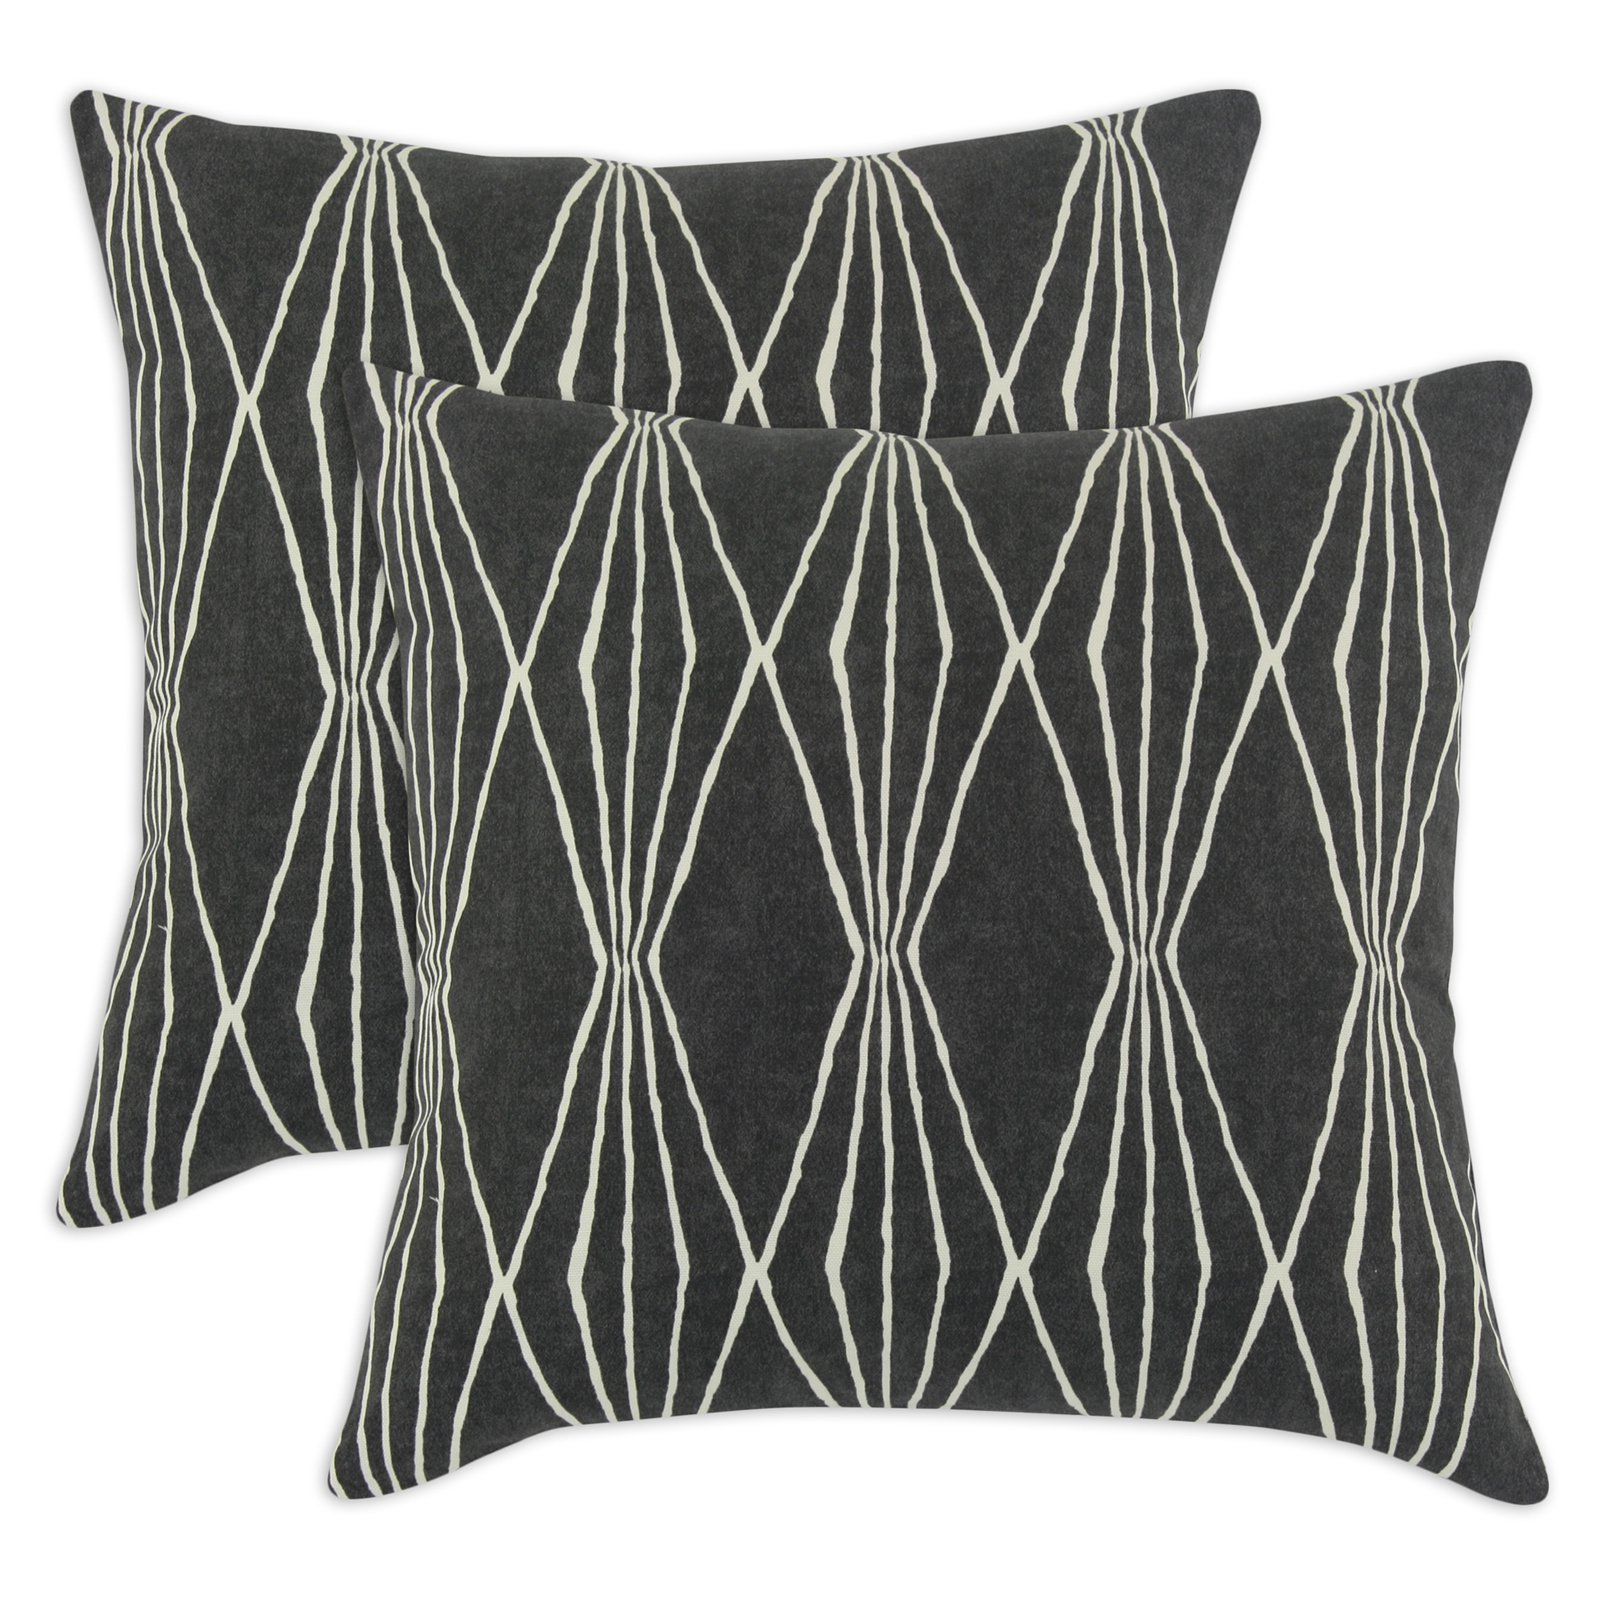 Brite Ideas Living Handcut Pillow - Set of 2